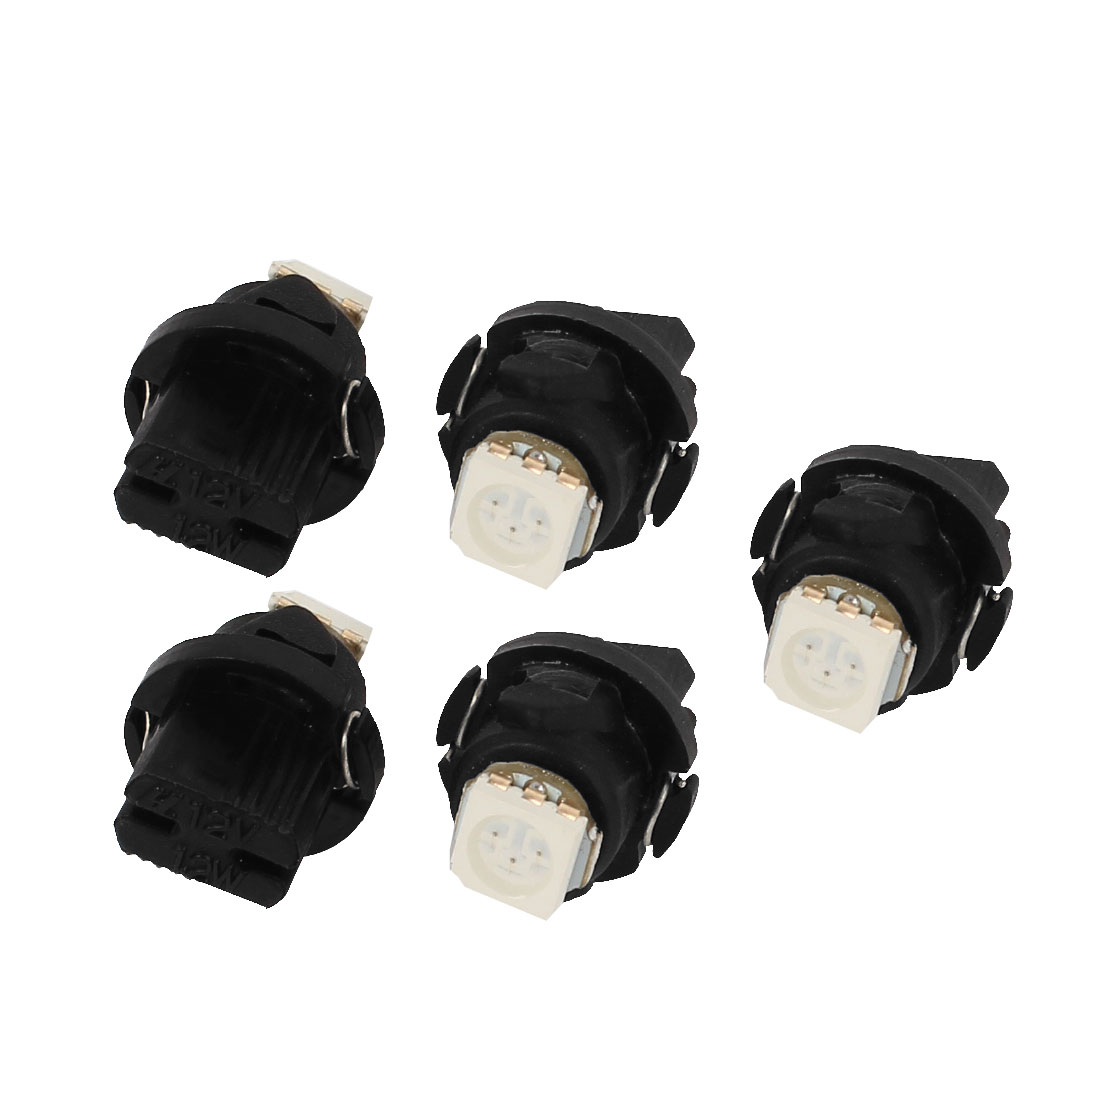 5 Pcs T5 5050 Yellow LED Vehicle Dashboard Lights Gauge Lamps Bulbs internal